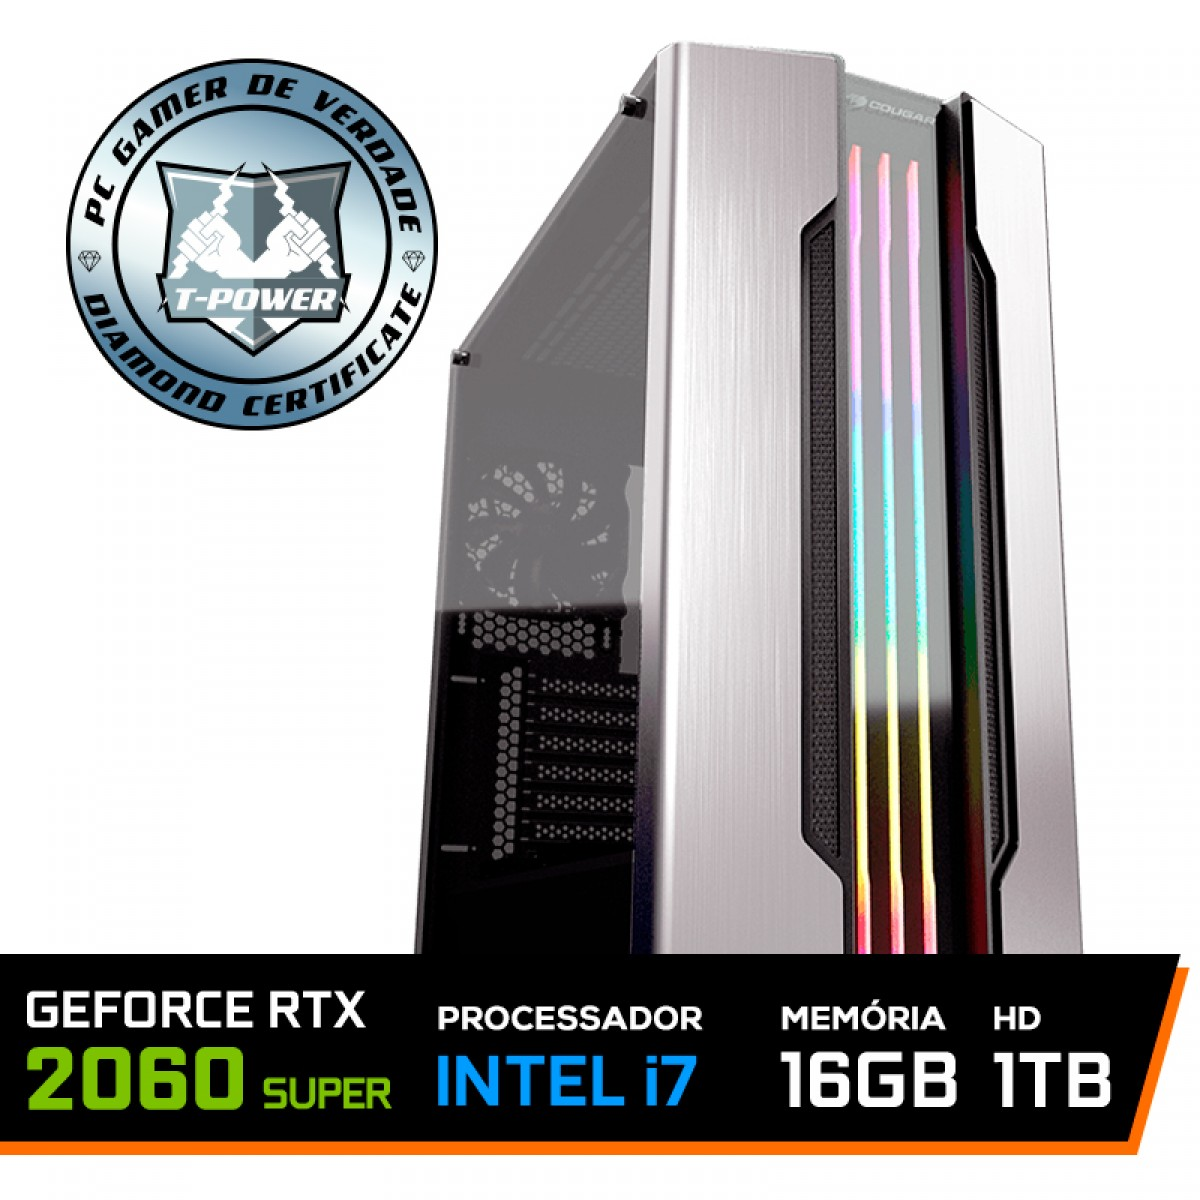 PC Gamer T-Power Captain Lvl-2 Intel I7 9700K 3.60GHz / Geforce RTX 2060 Super / 16GB DDR4 / HD 1TB / 600W